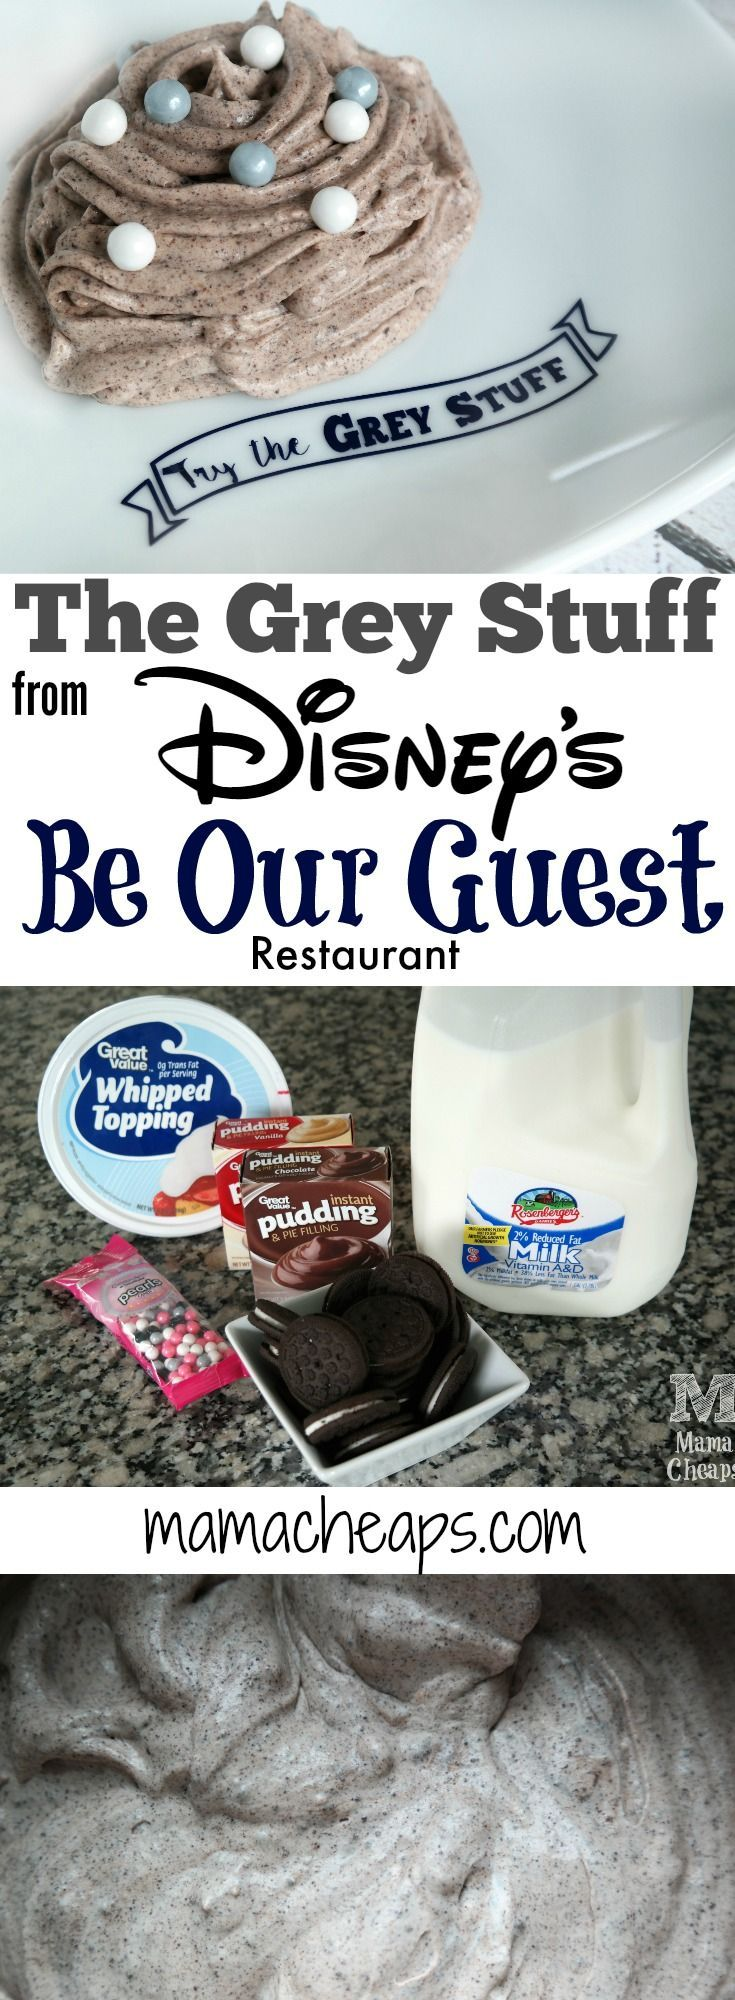 """How to Make """"The Grey Stuff"""" from Disney's Be Our Guest Restaurant Find more Disney fun on MamaCheaps.com!"""